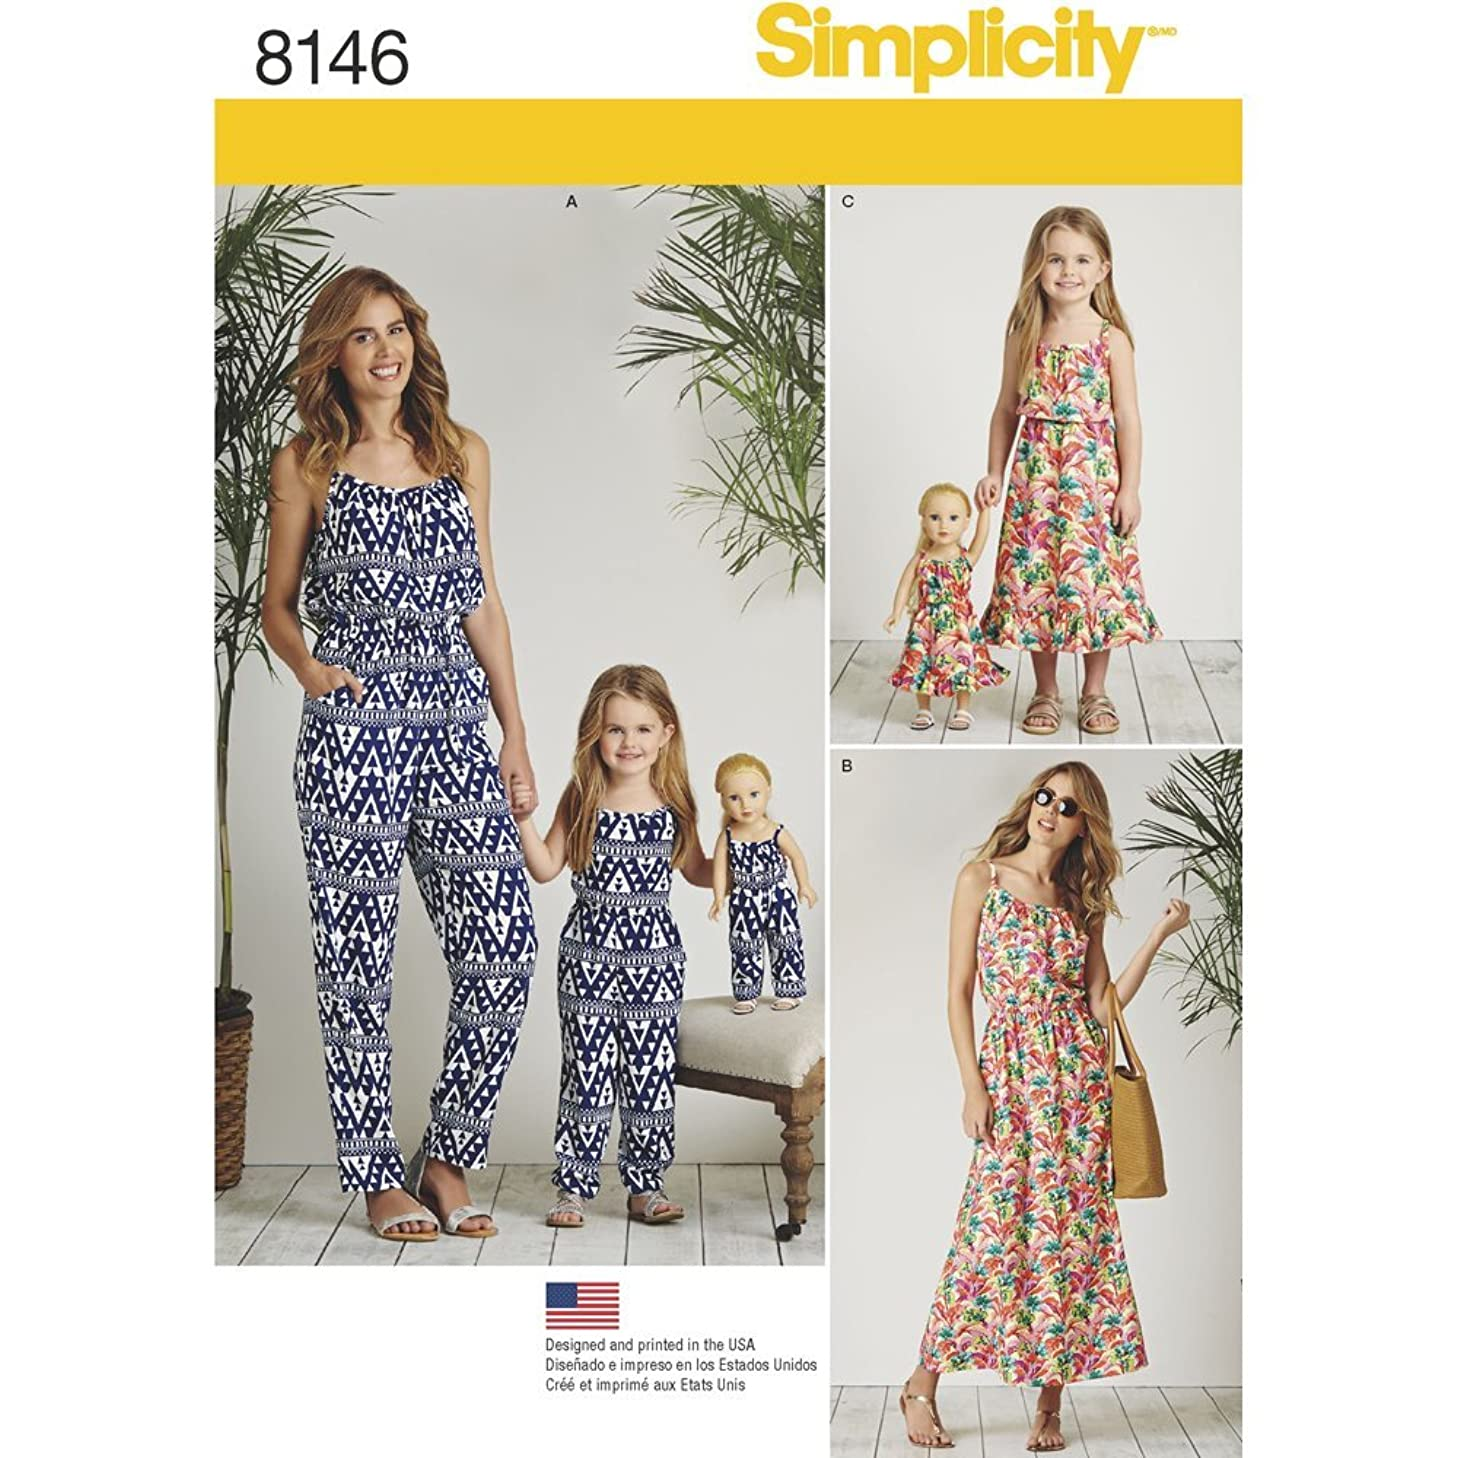 Simplicity Creative Patterns Simplicity Pattern 8146 Matching Outfits for Misses, Child and 18